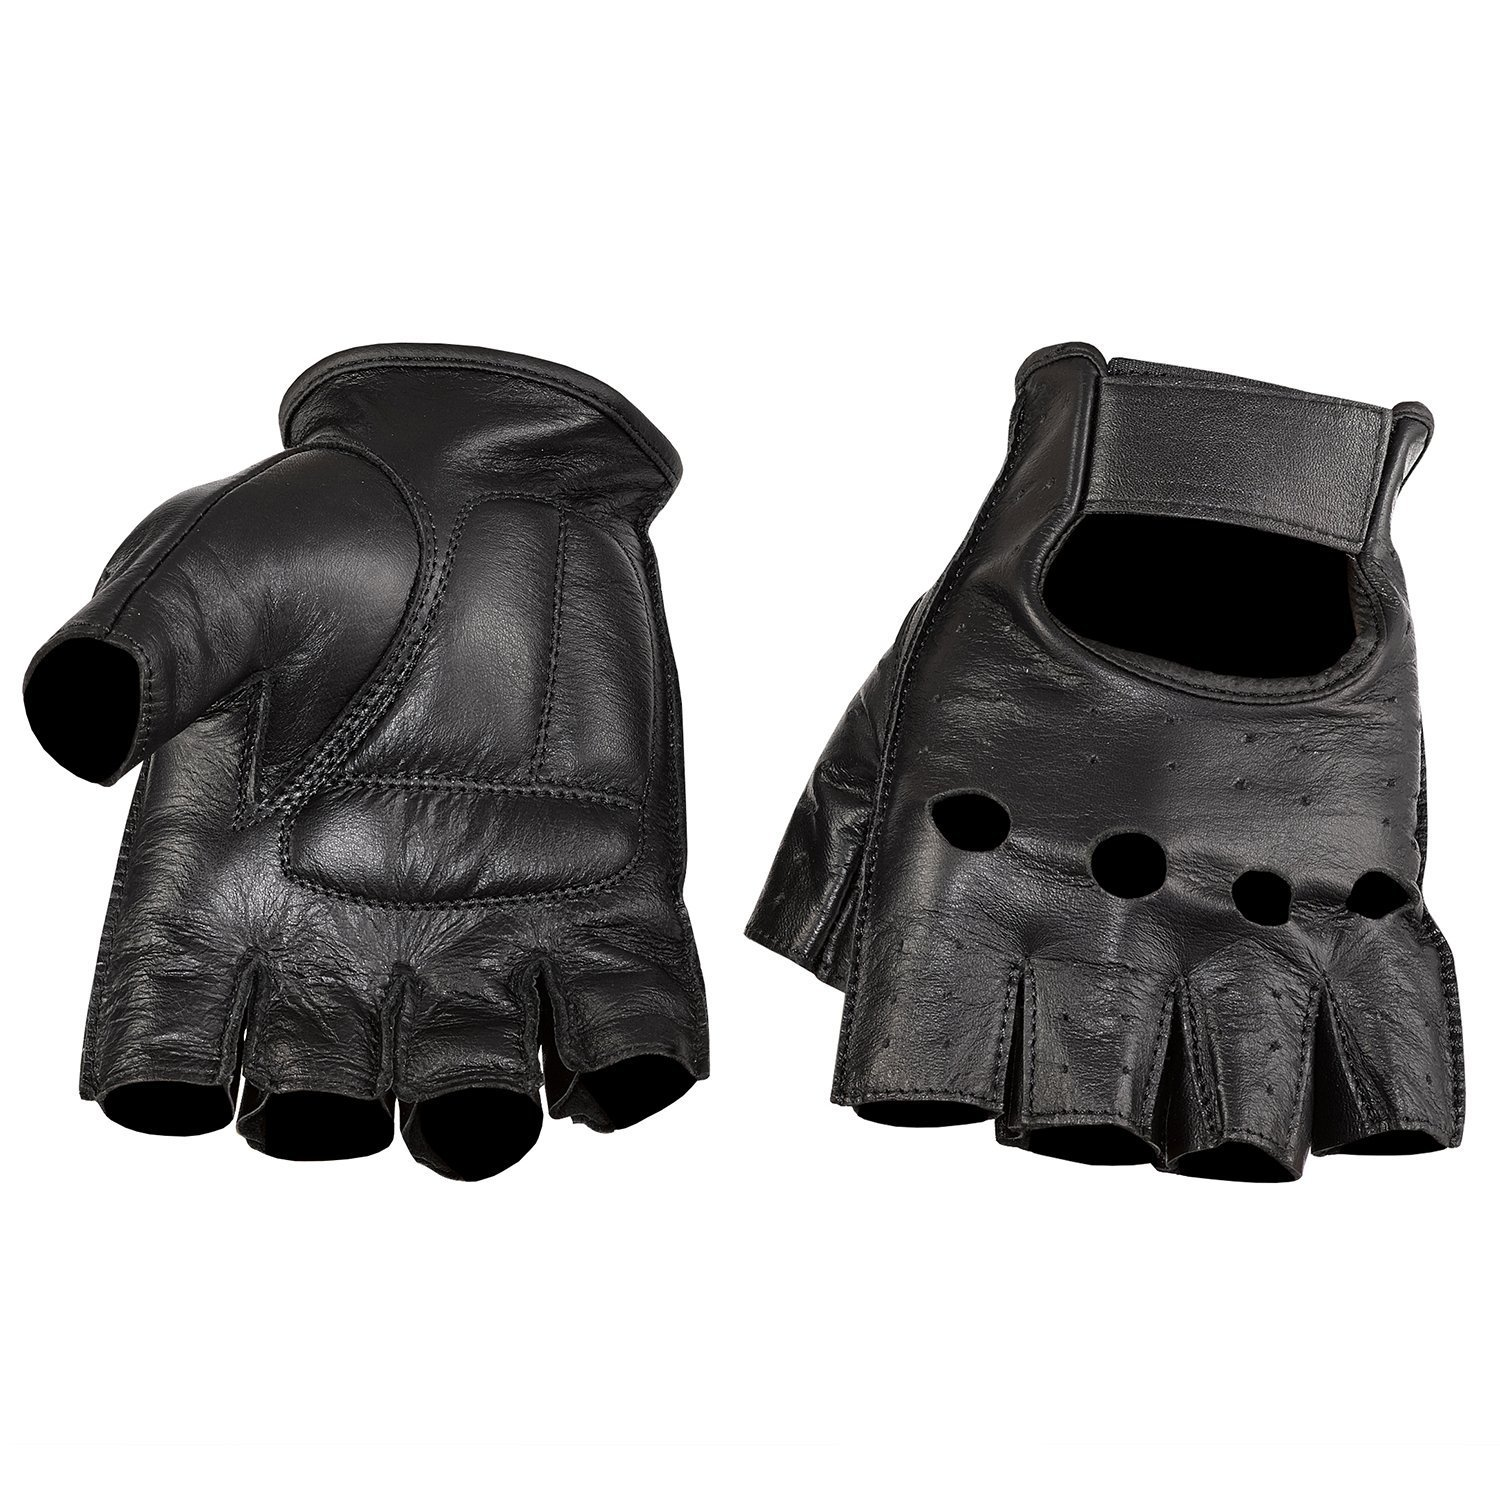 NEW PRODUCT Viking Cycle Men' s Premium Leather Half Finger Motorcycle Cruiser Gloves (Large, Black)